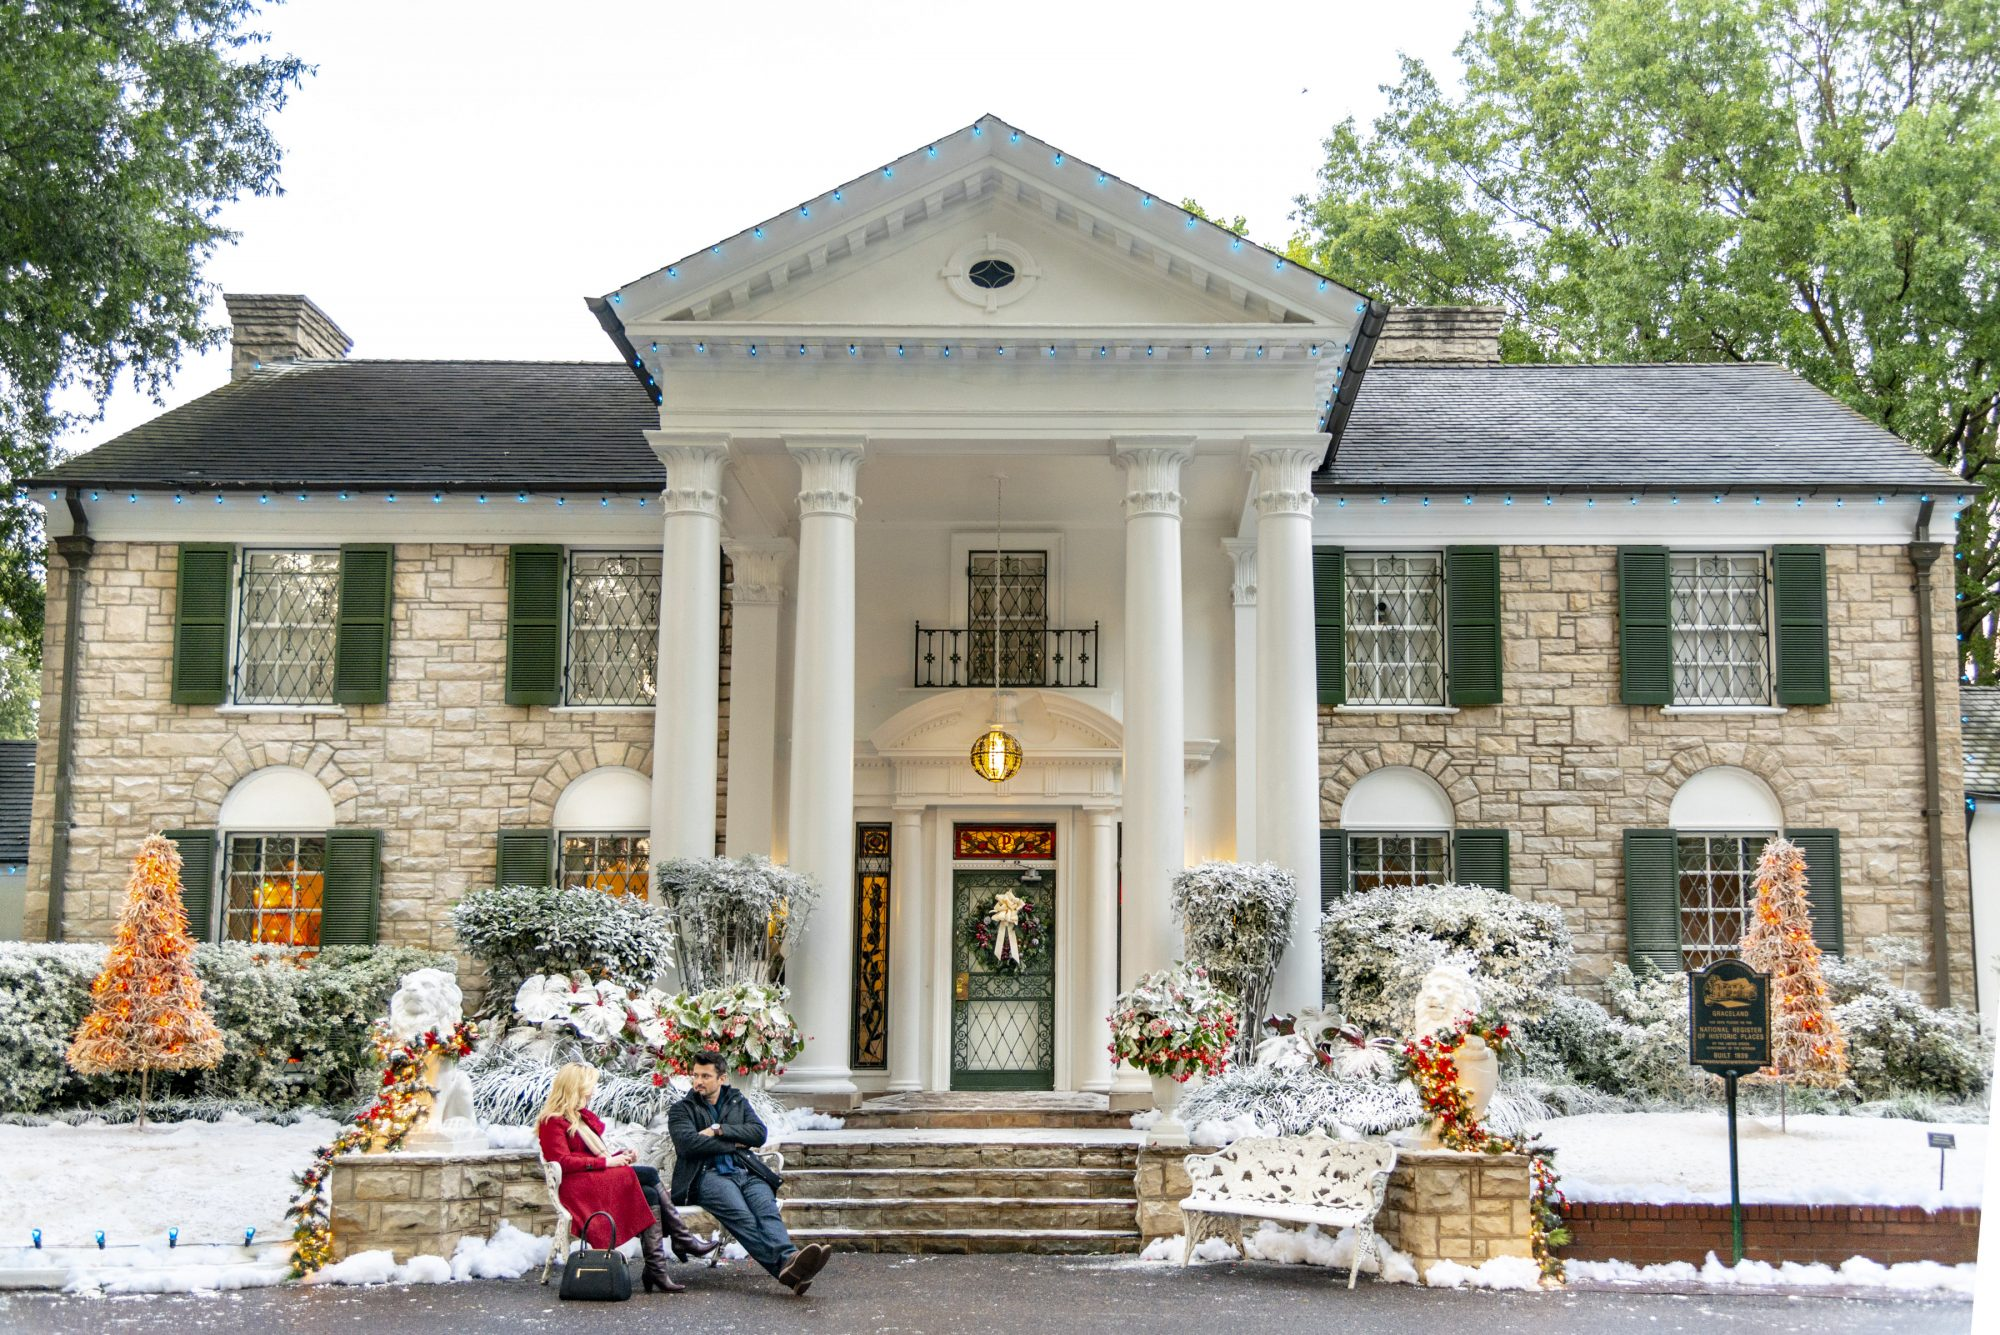 Christmas In Graceland.Christmas At Graceland A New Hallmark Channel Movie